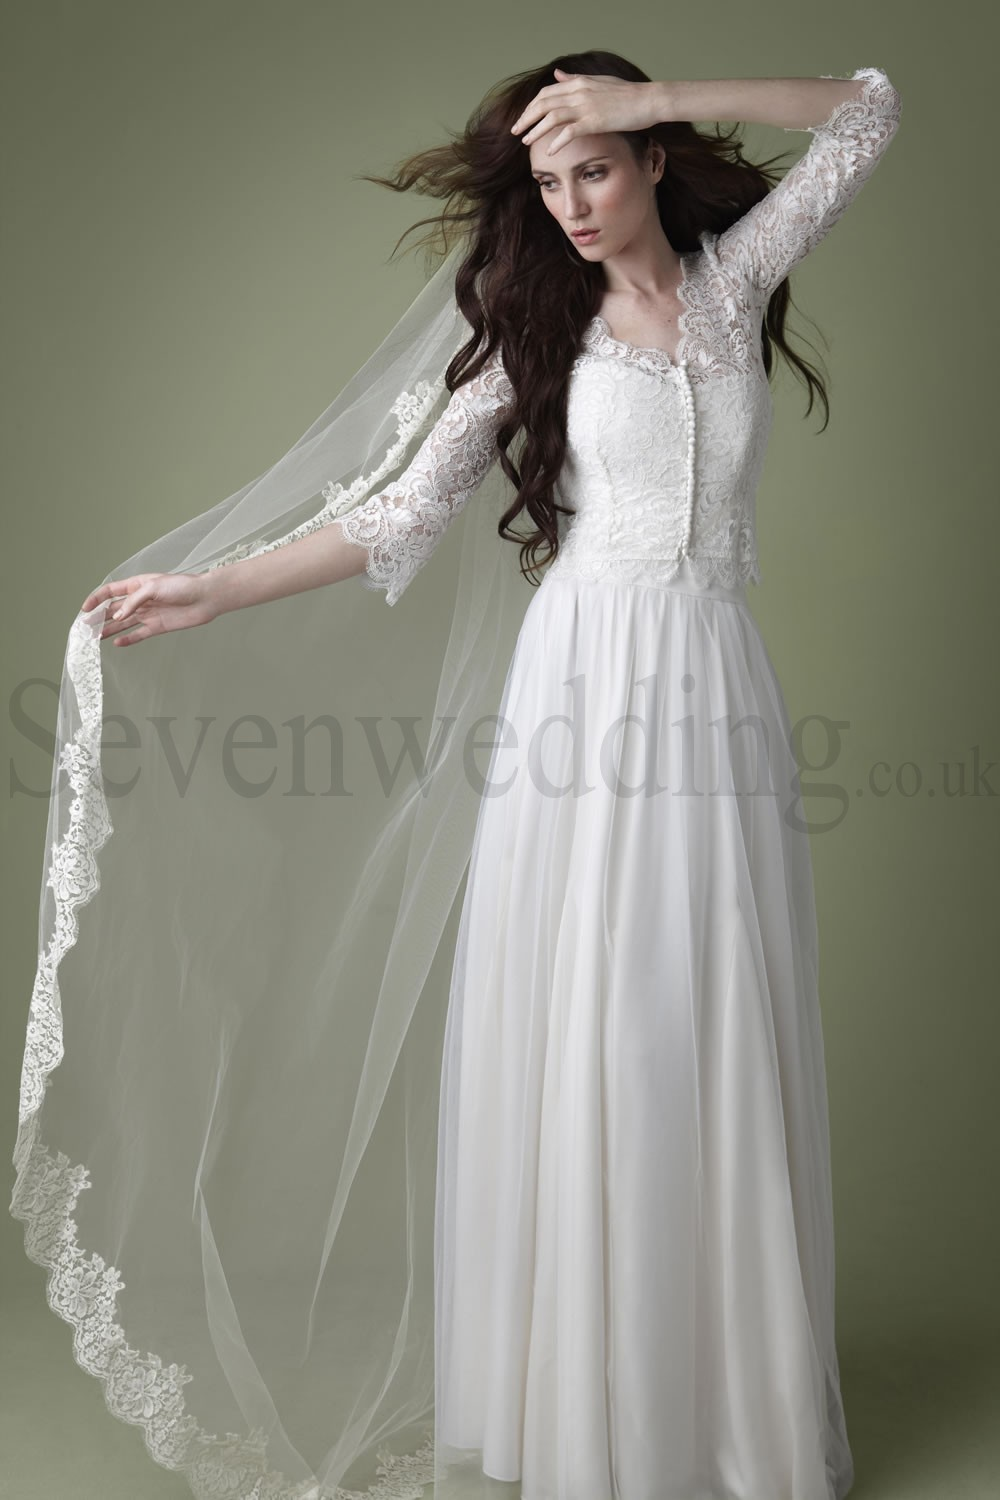 sevenweddingdresses wedding gown for a civil marriage